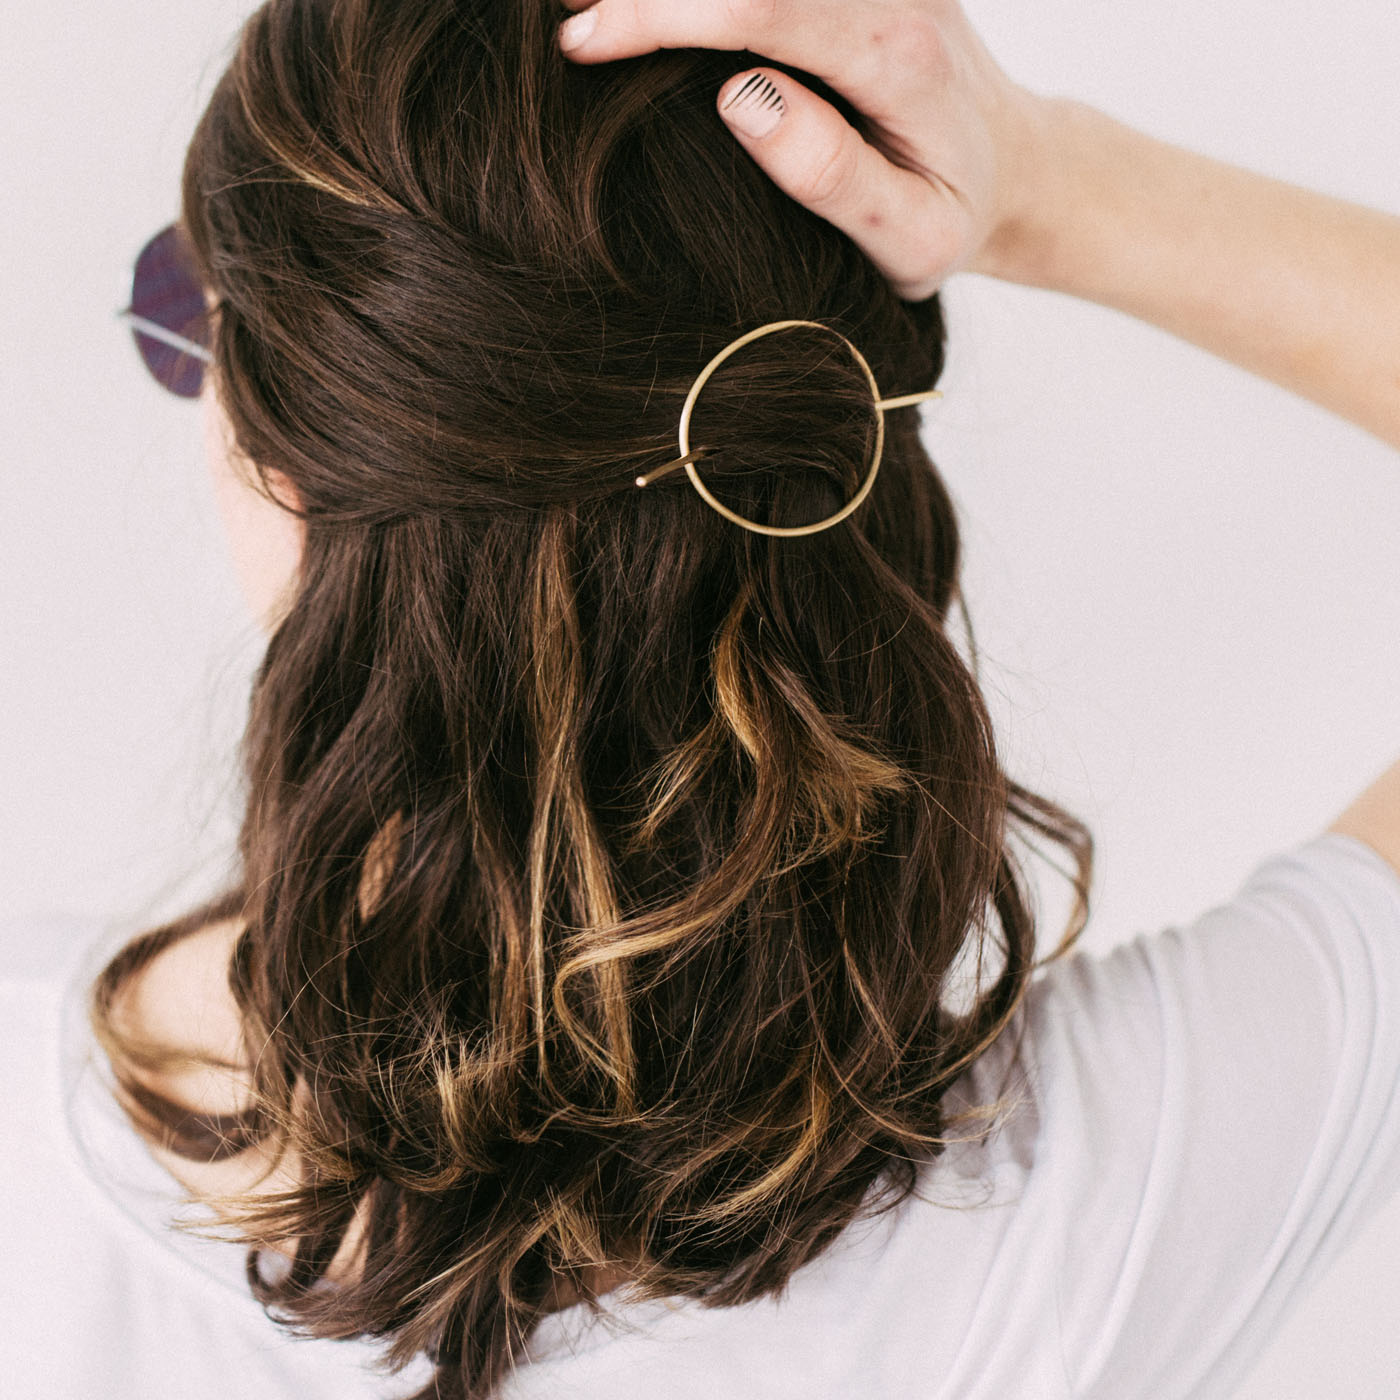 Orbital Hair Pin for Curly + Thick Hair — Favor Jewelry